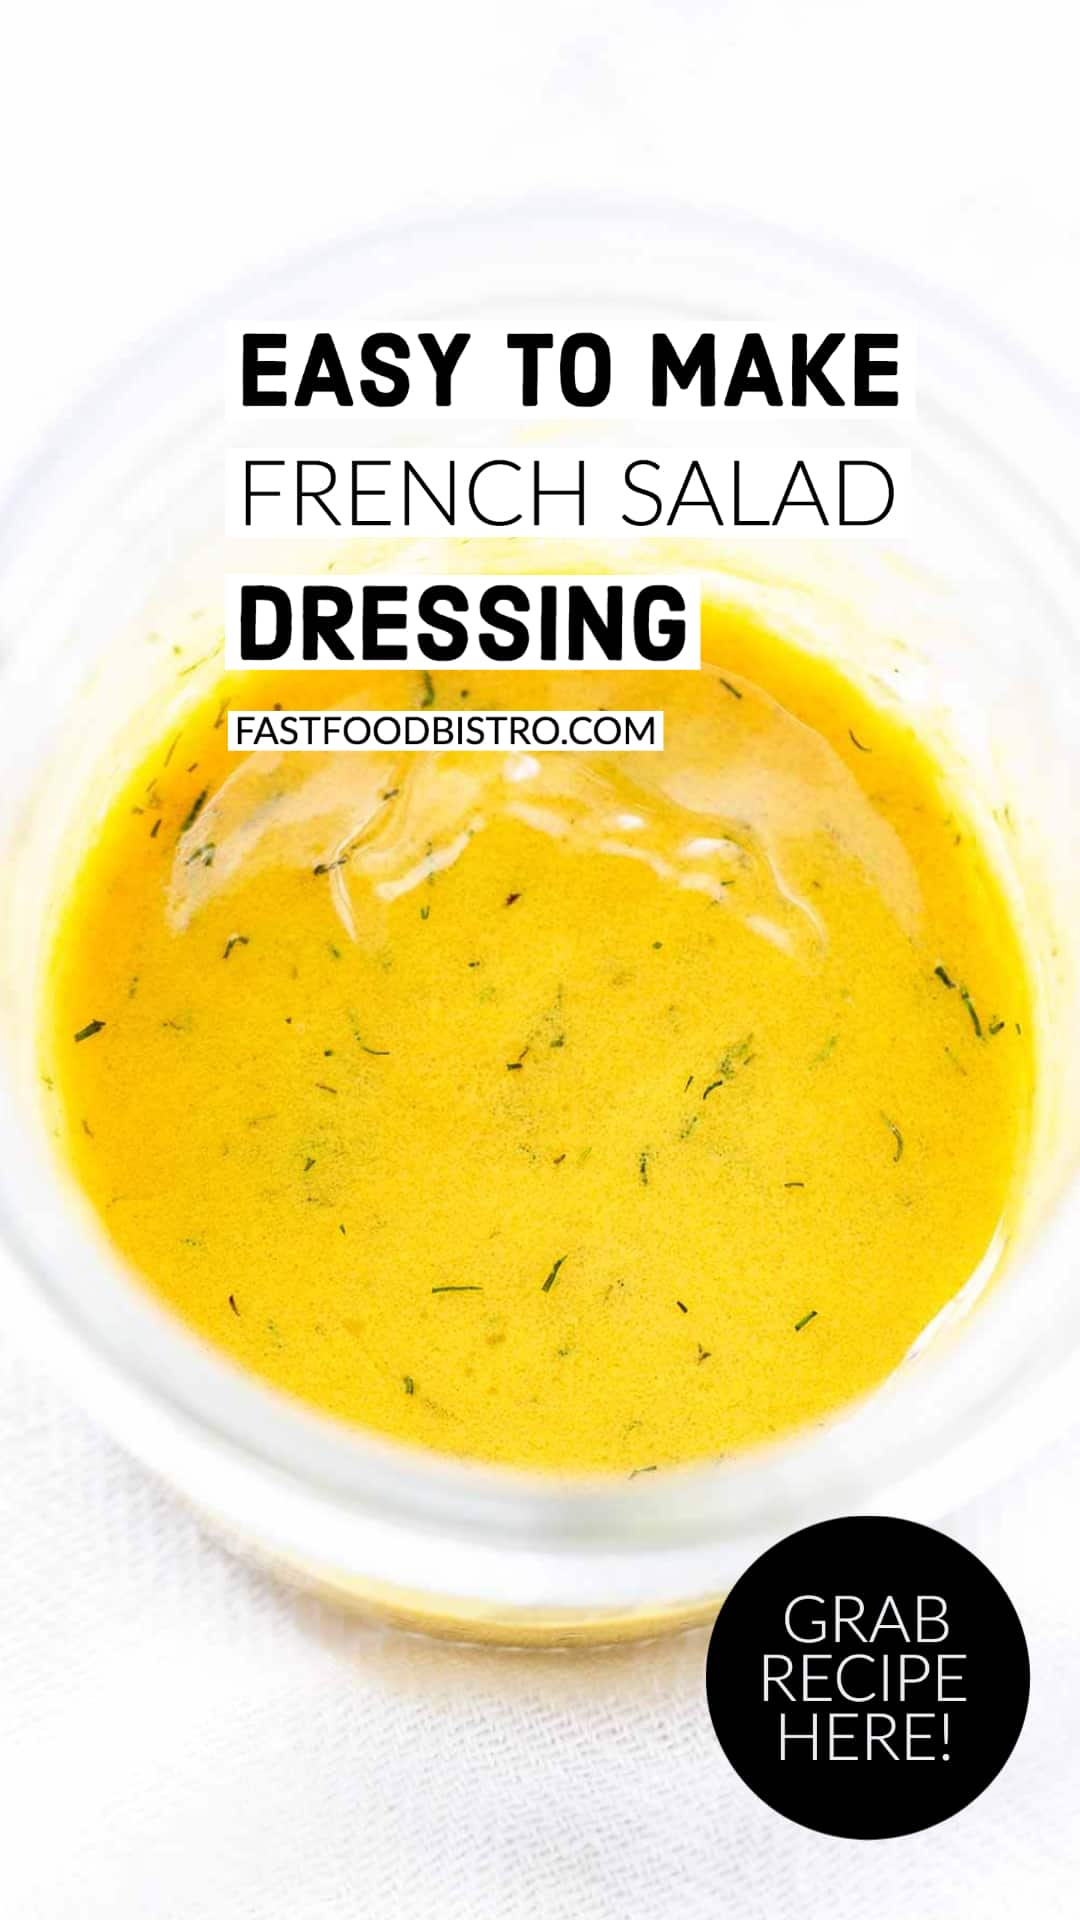 French salad dressing or Dijon mustard dressing is super easy to make and great to serve with a lettuce salad or veggie salad. Done in less than 5 minutes. Try it! Visit fastfoodbistro.com for the full recipe #fastfoodbistro #frenchsaladdressing #frenchvinaigrette #frenchdressing #dijonmustarddressing